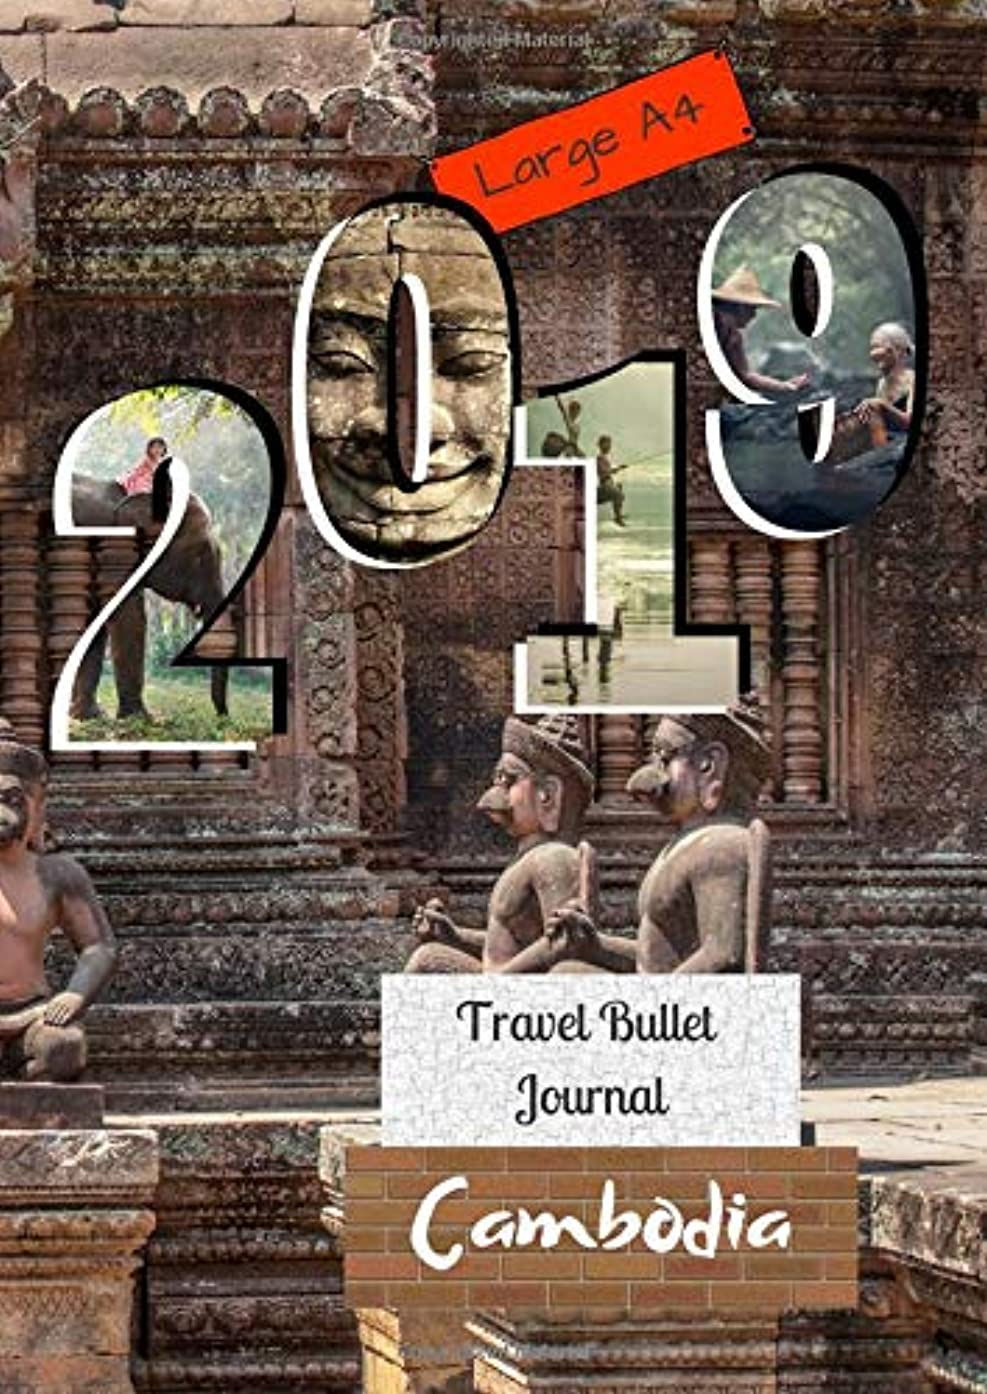 Large A4 2019 Travel Bullet Journal Cambodia: Turn your adventures into a life-long memory with this notebook planner and organzier.